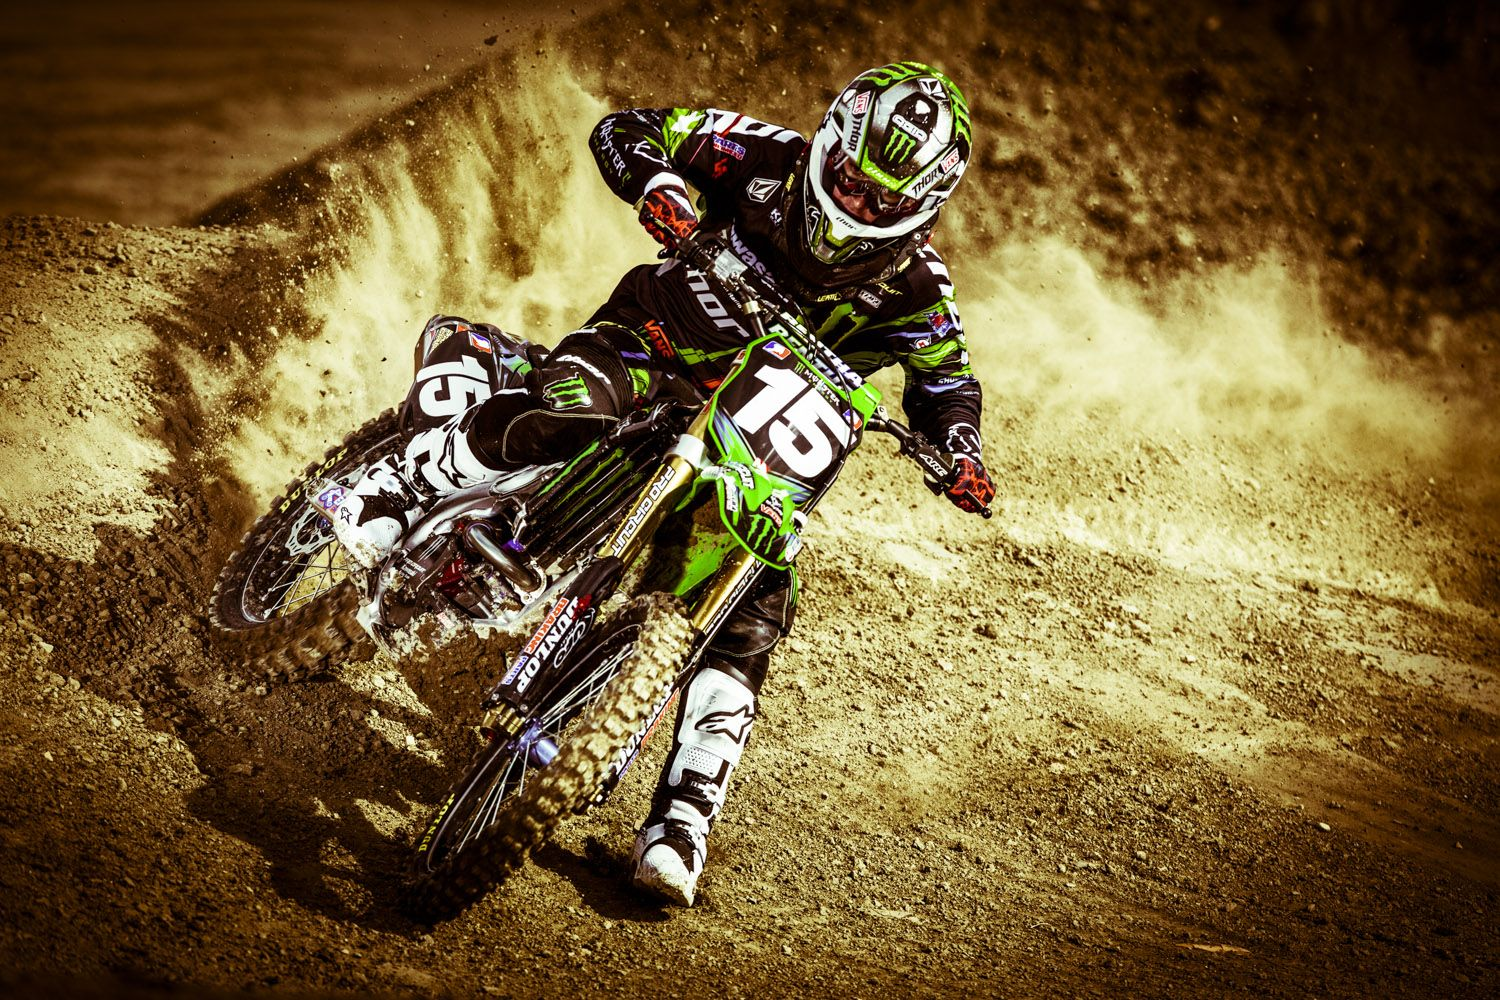 Motocross wallpaper free hd wallpapers page 0 wallpaperlepi - Monster Energy Motocross Wallpaper 17906 Full Hd Wallpaper Desktop